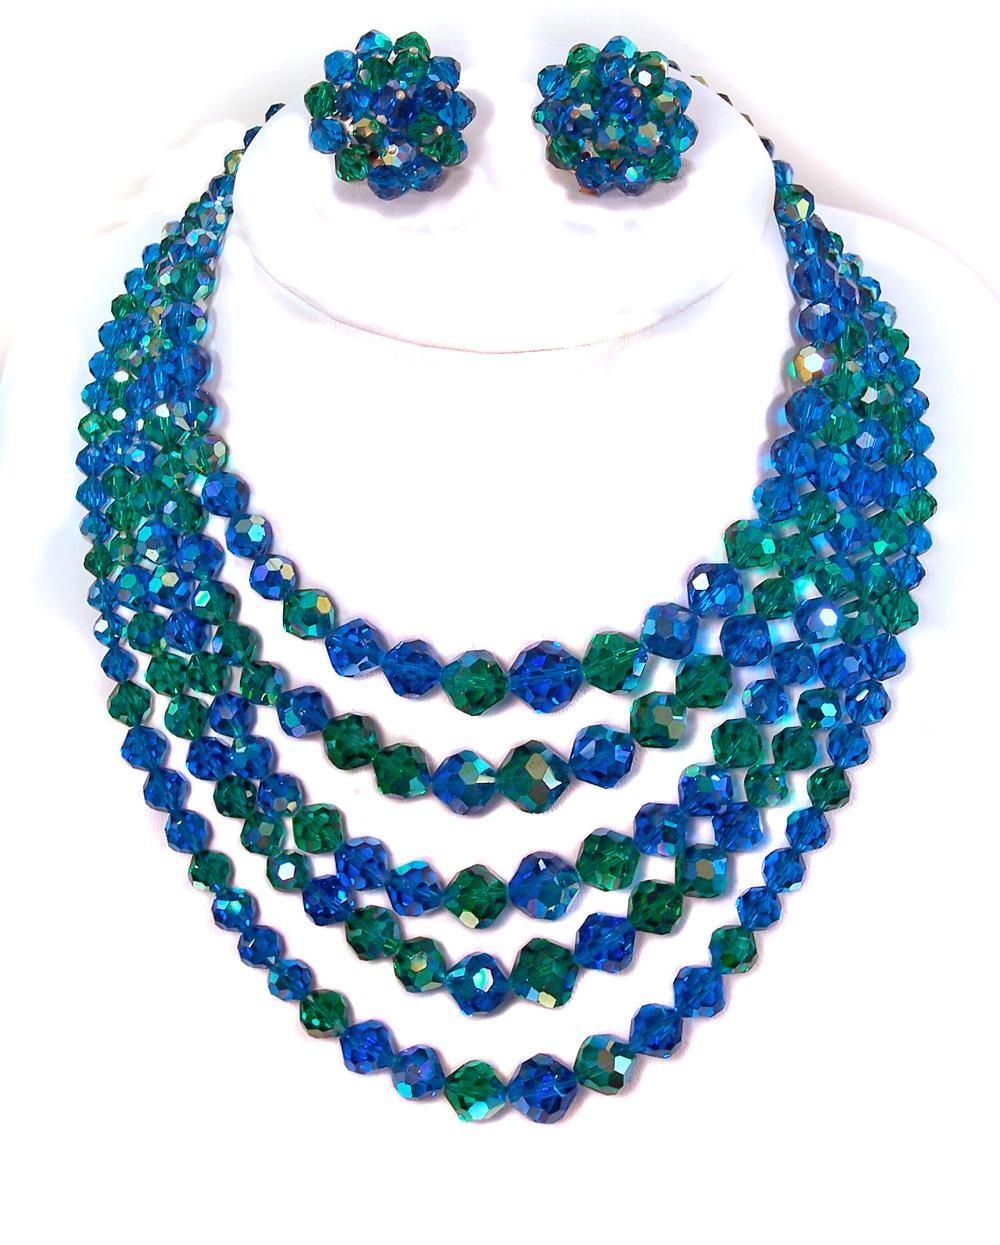 Vintage Capri Blue & Green 5 strand Swarovski Crystal Necklace & Earrings